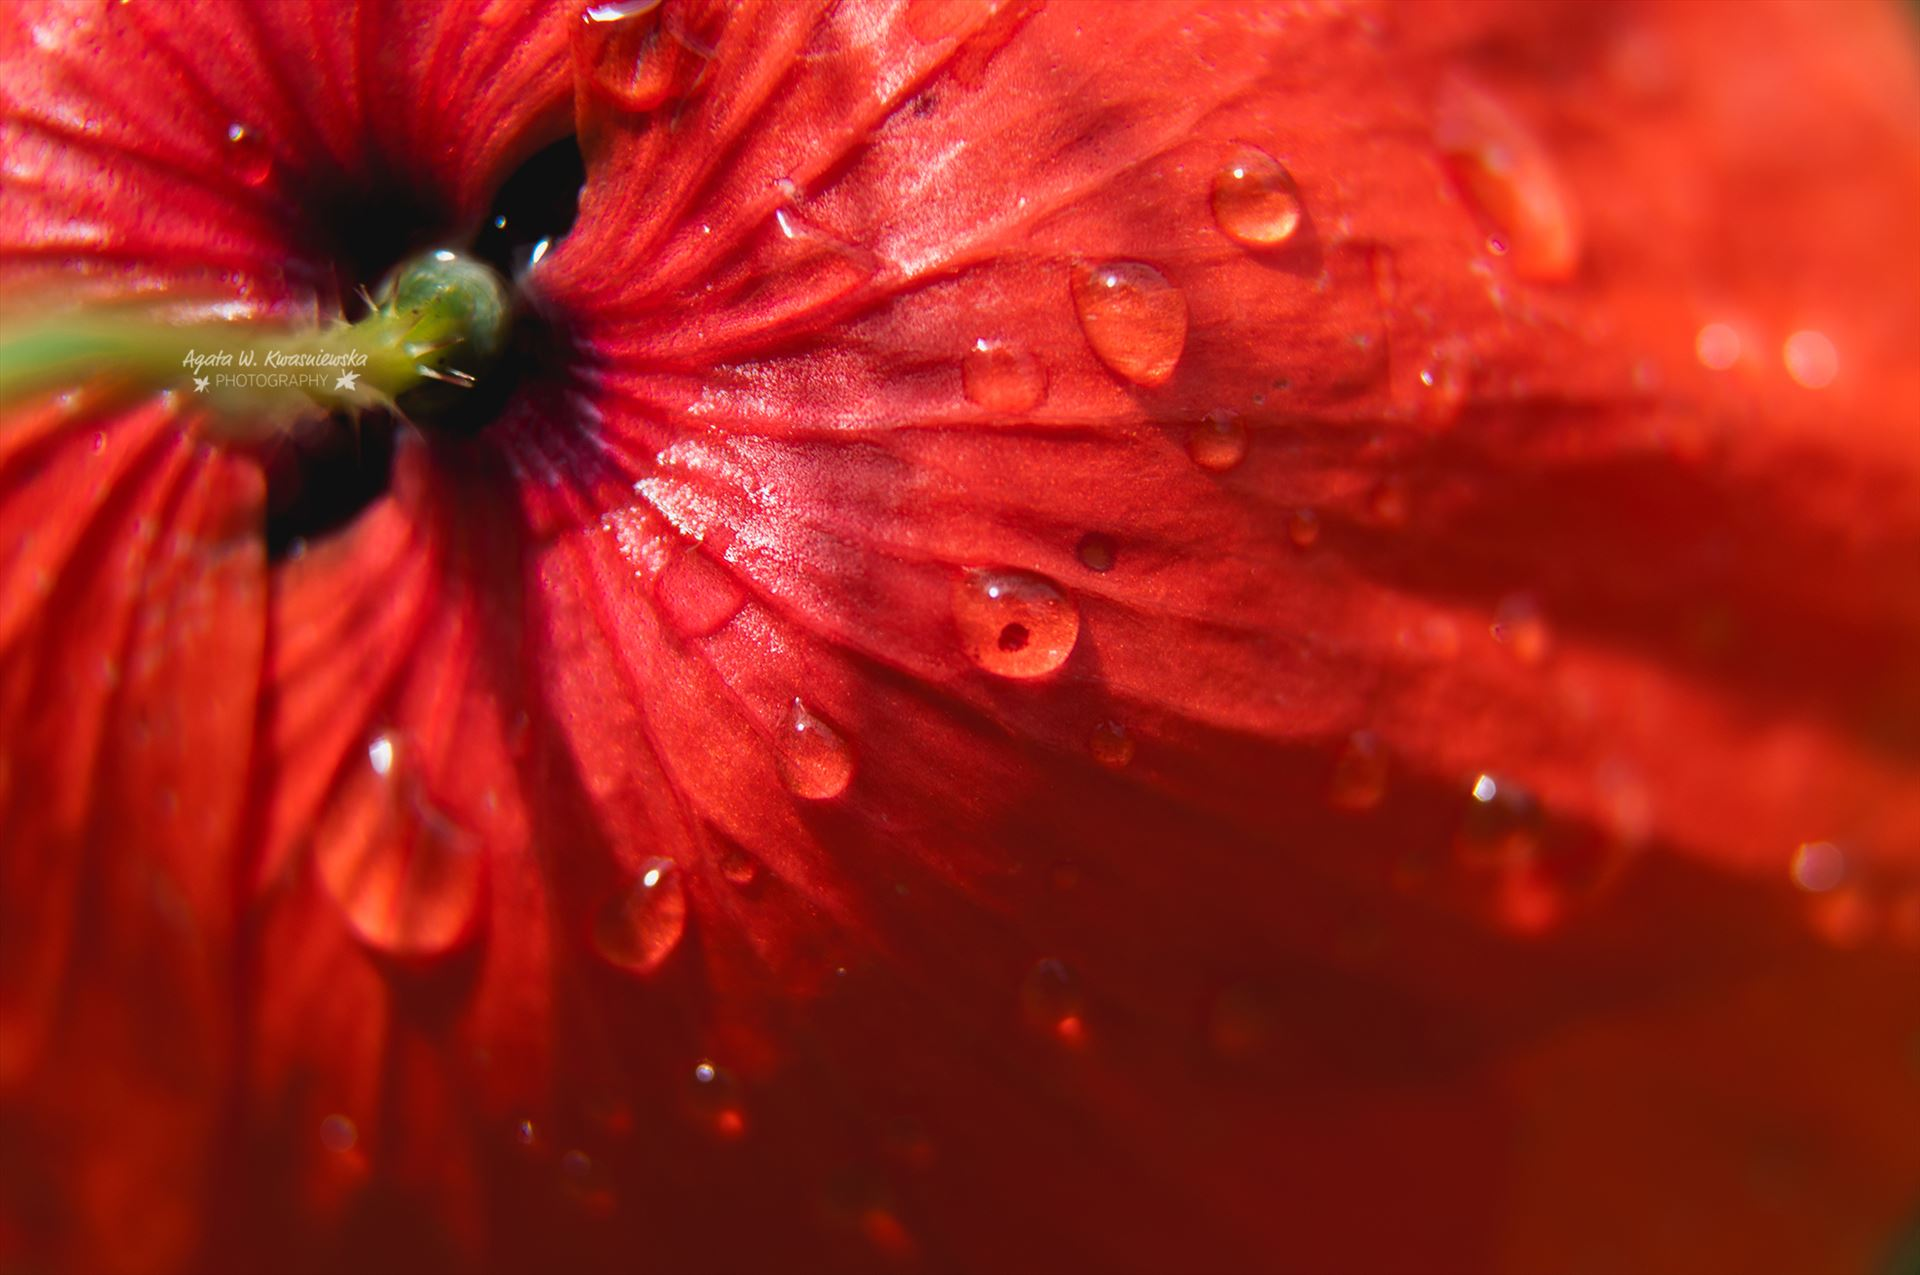 Droplets -  by Agata W. Kwasniewska Photography